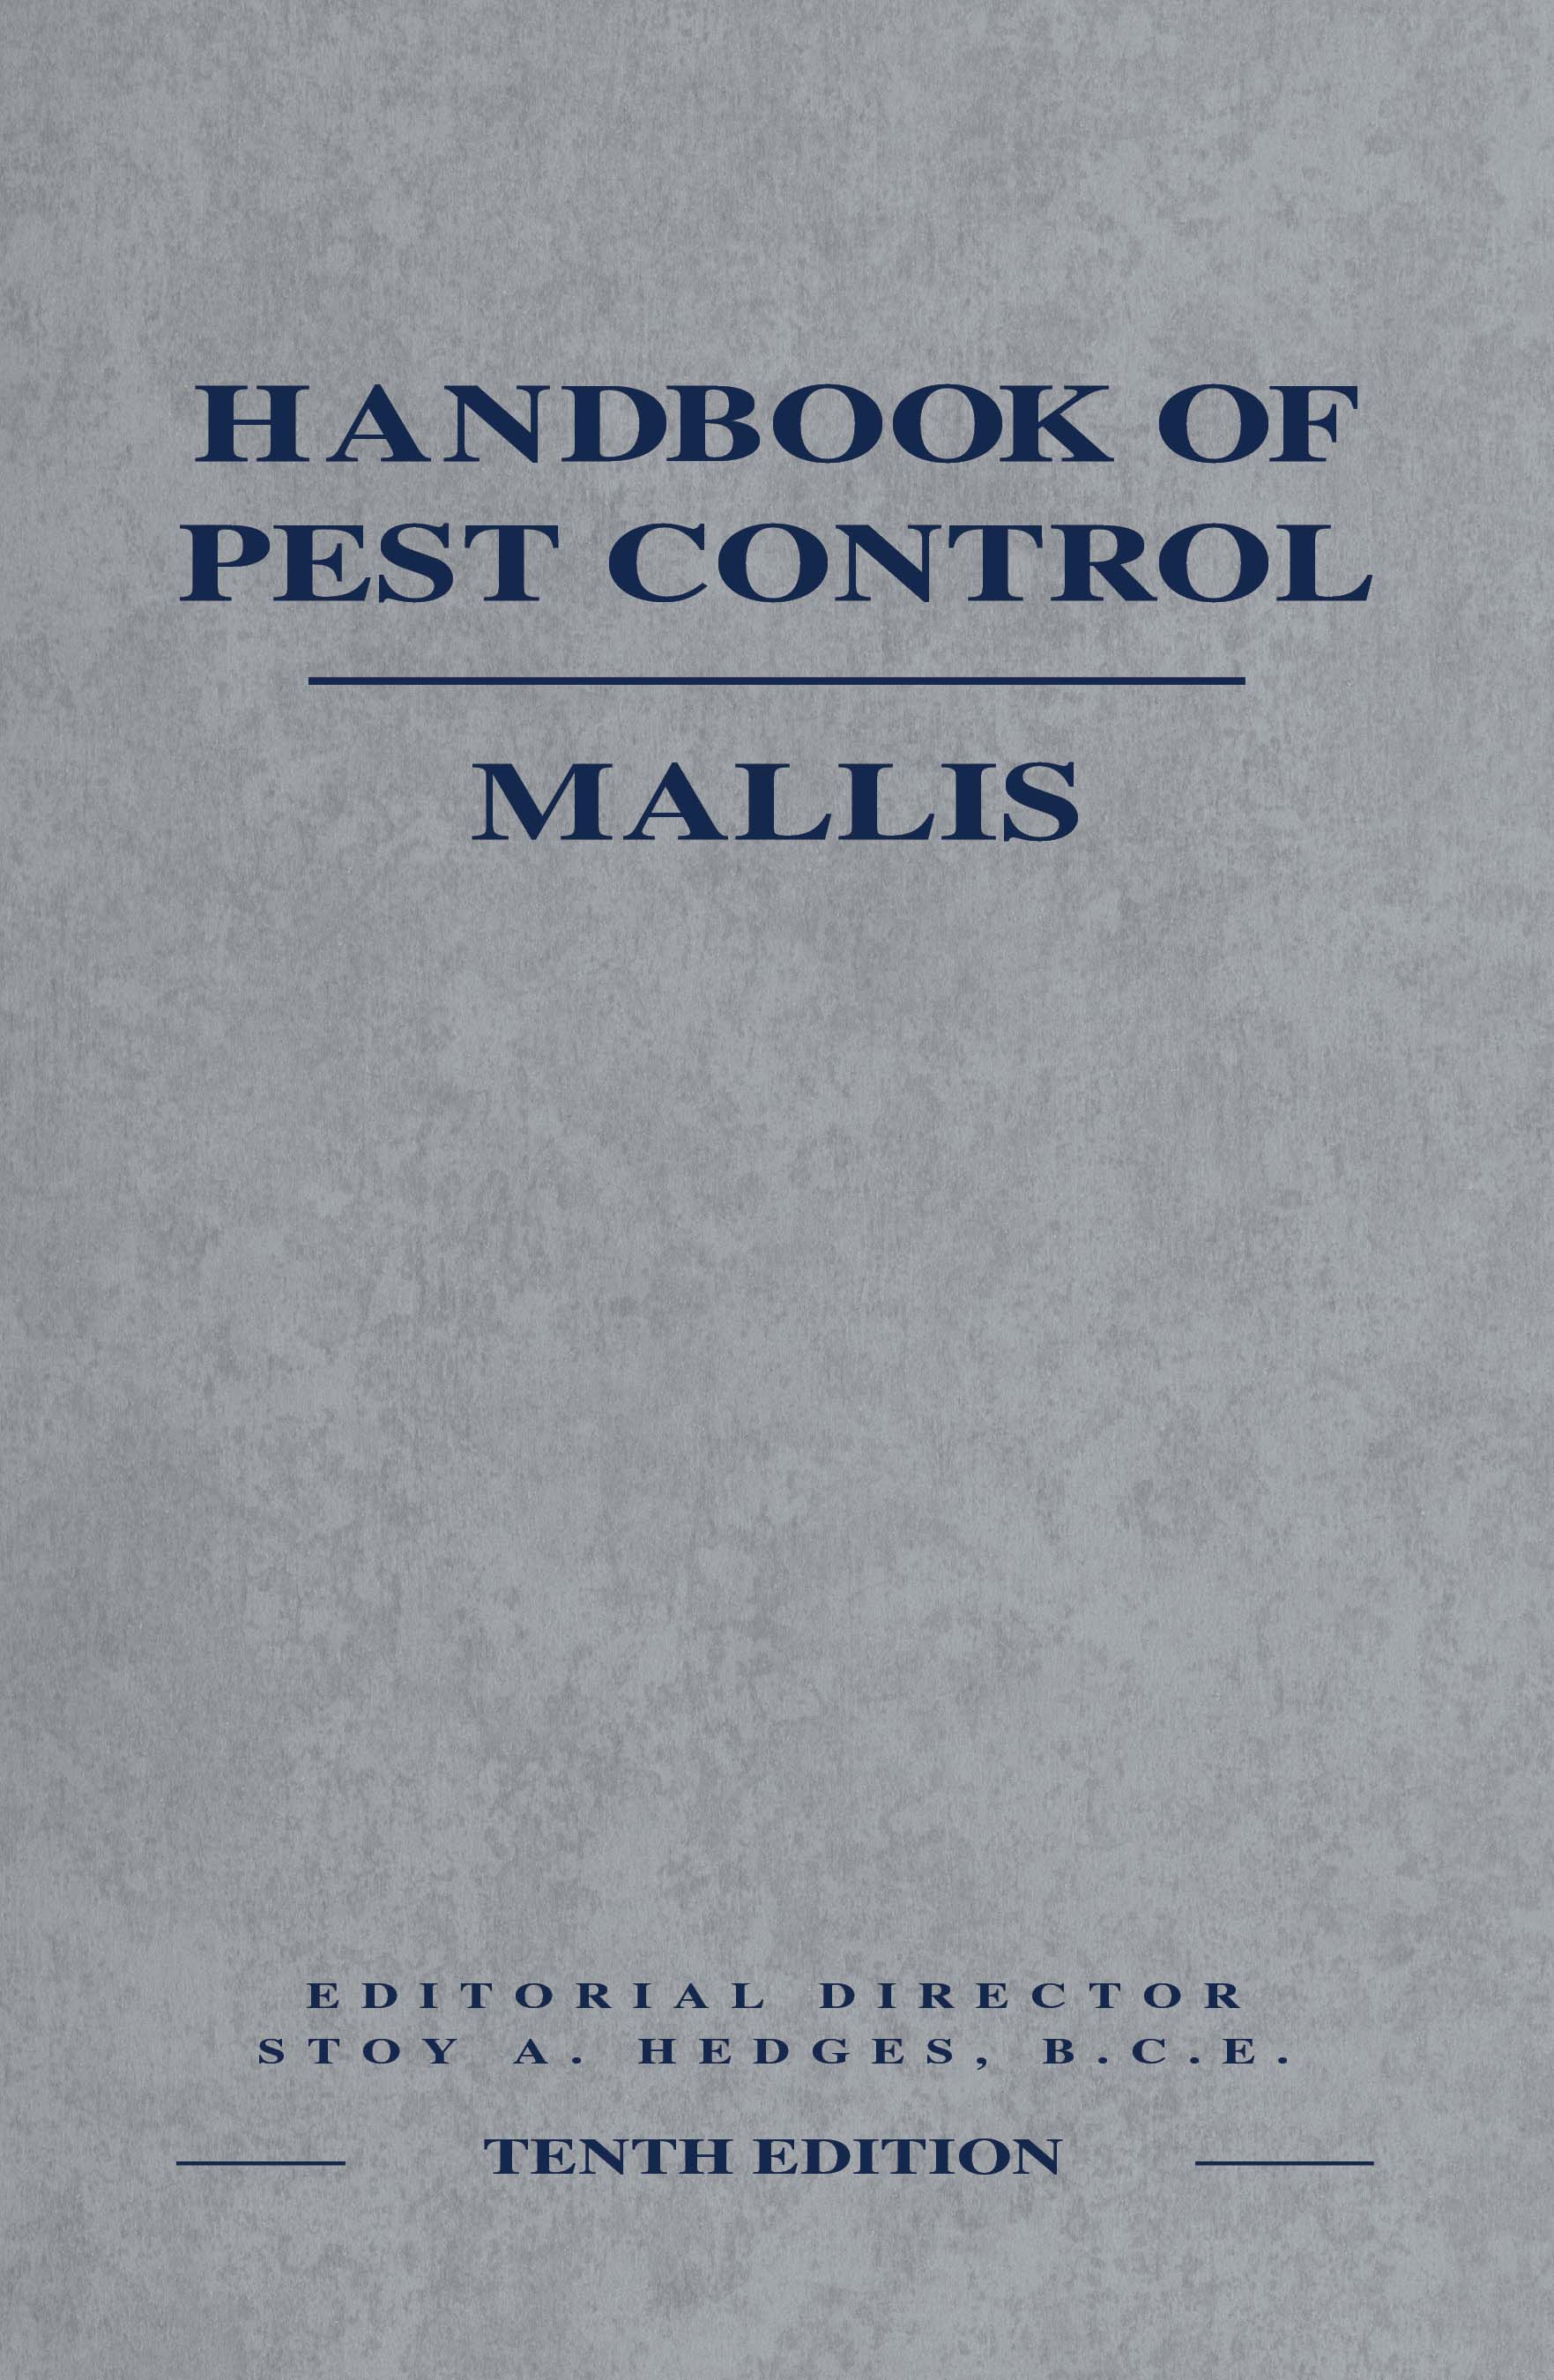 Mallis Handbook of Pest Control, 10th Ed. - Image